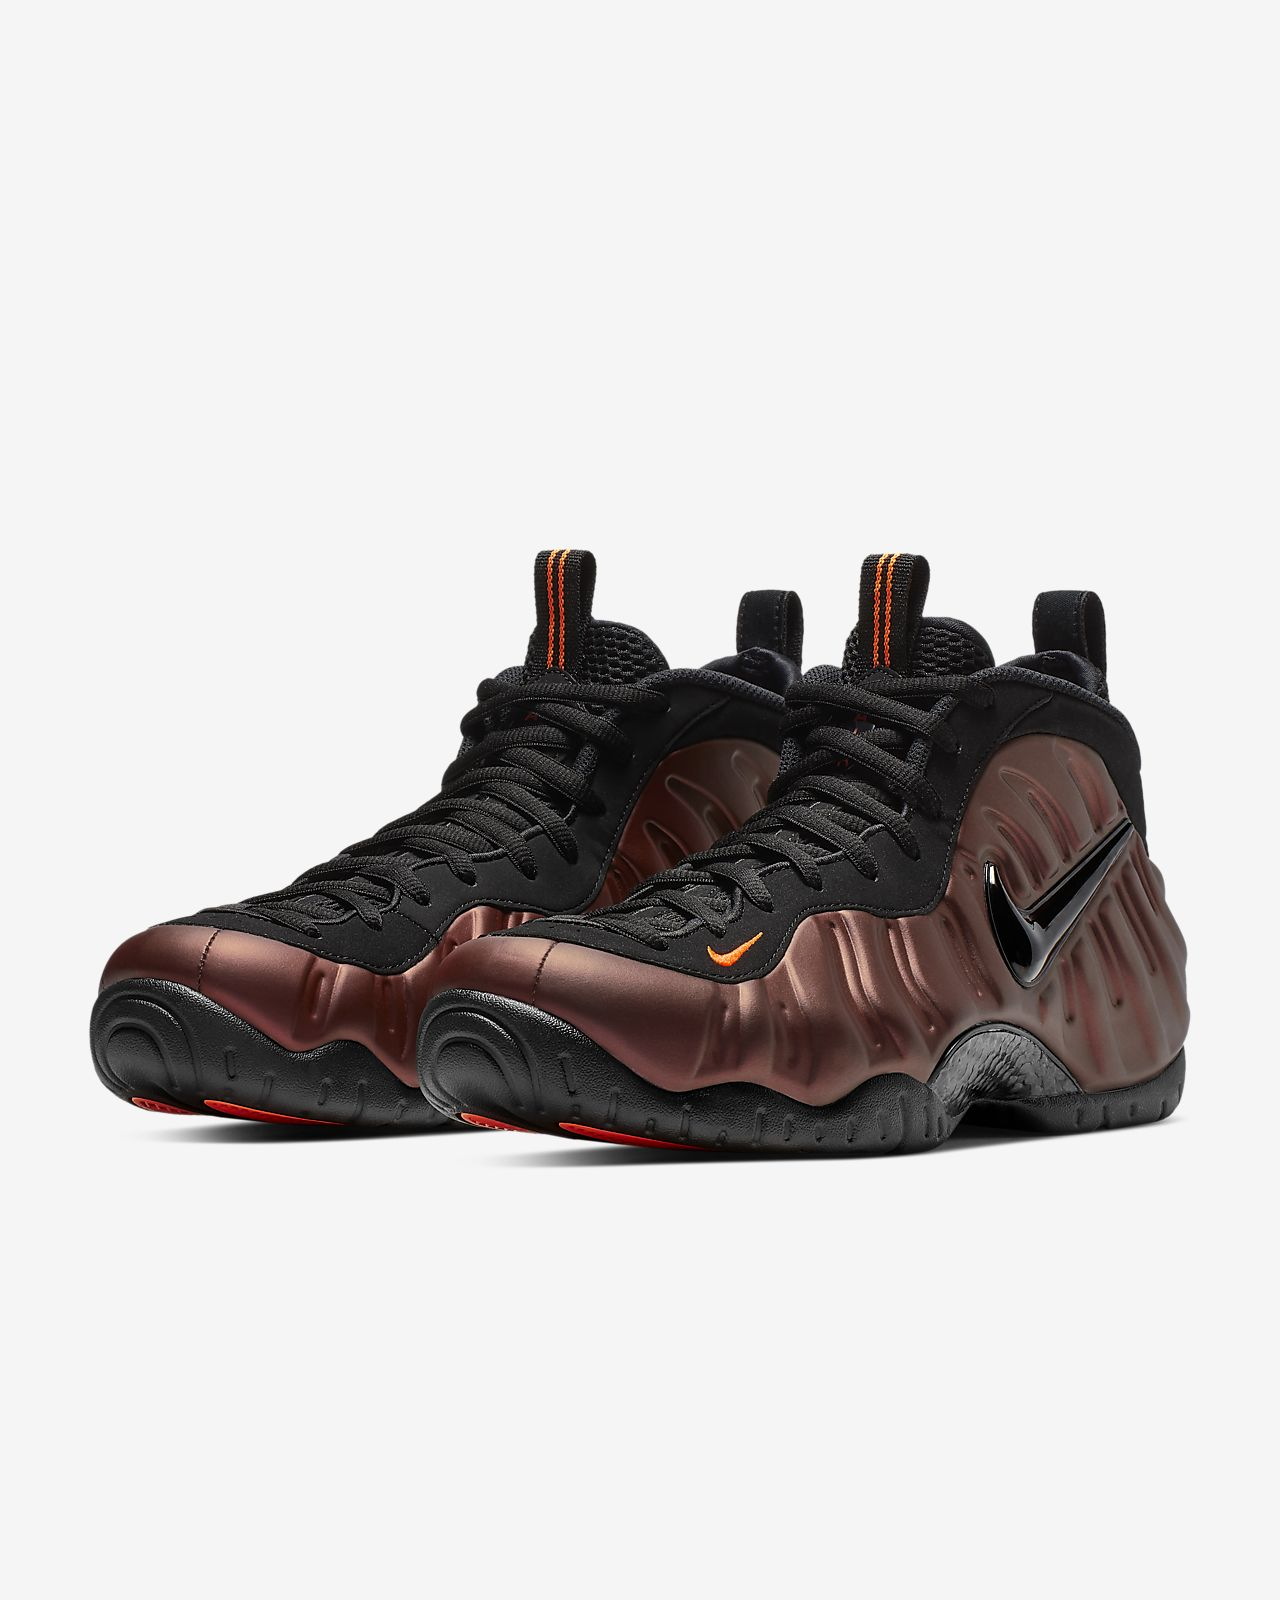 6512c8fe5ced3 Nike Air Foamposite Pro Men s Shoe. Nike.com SG